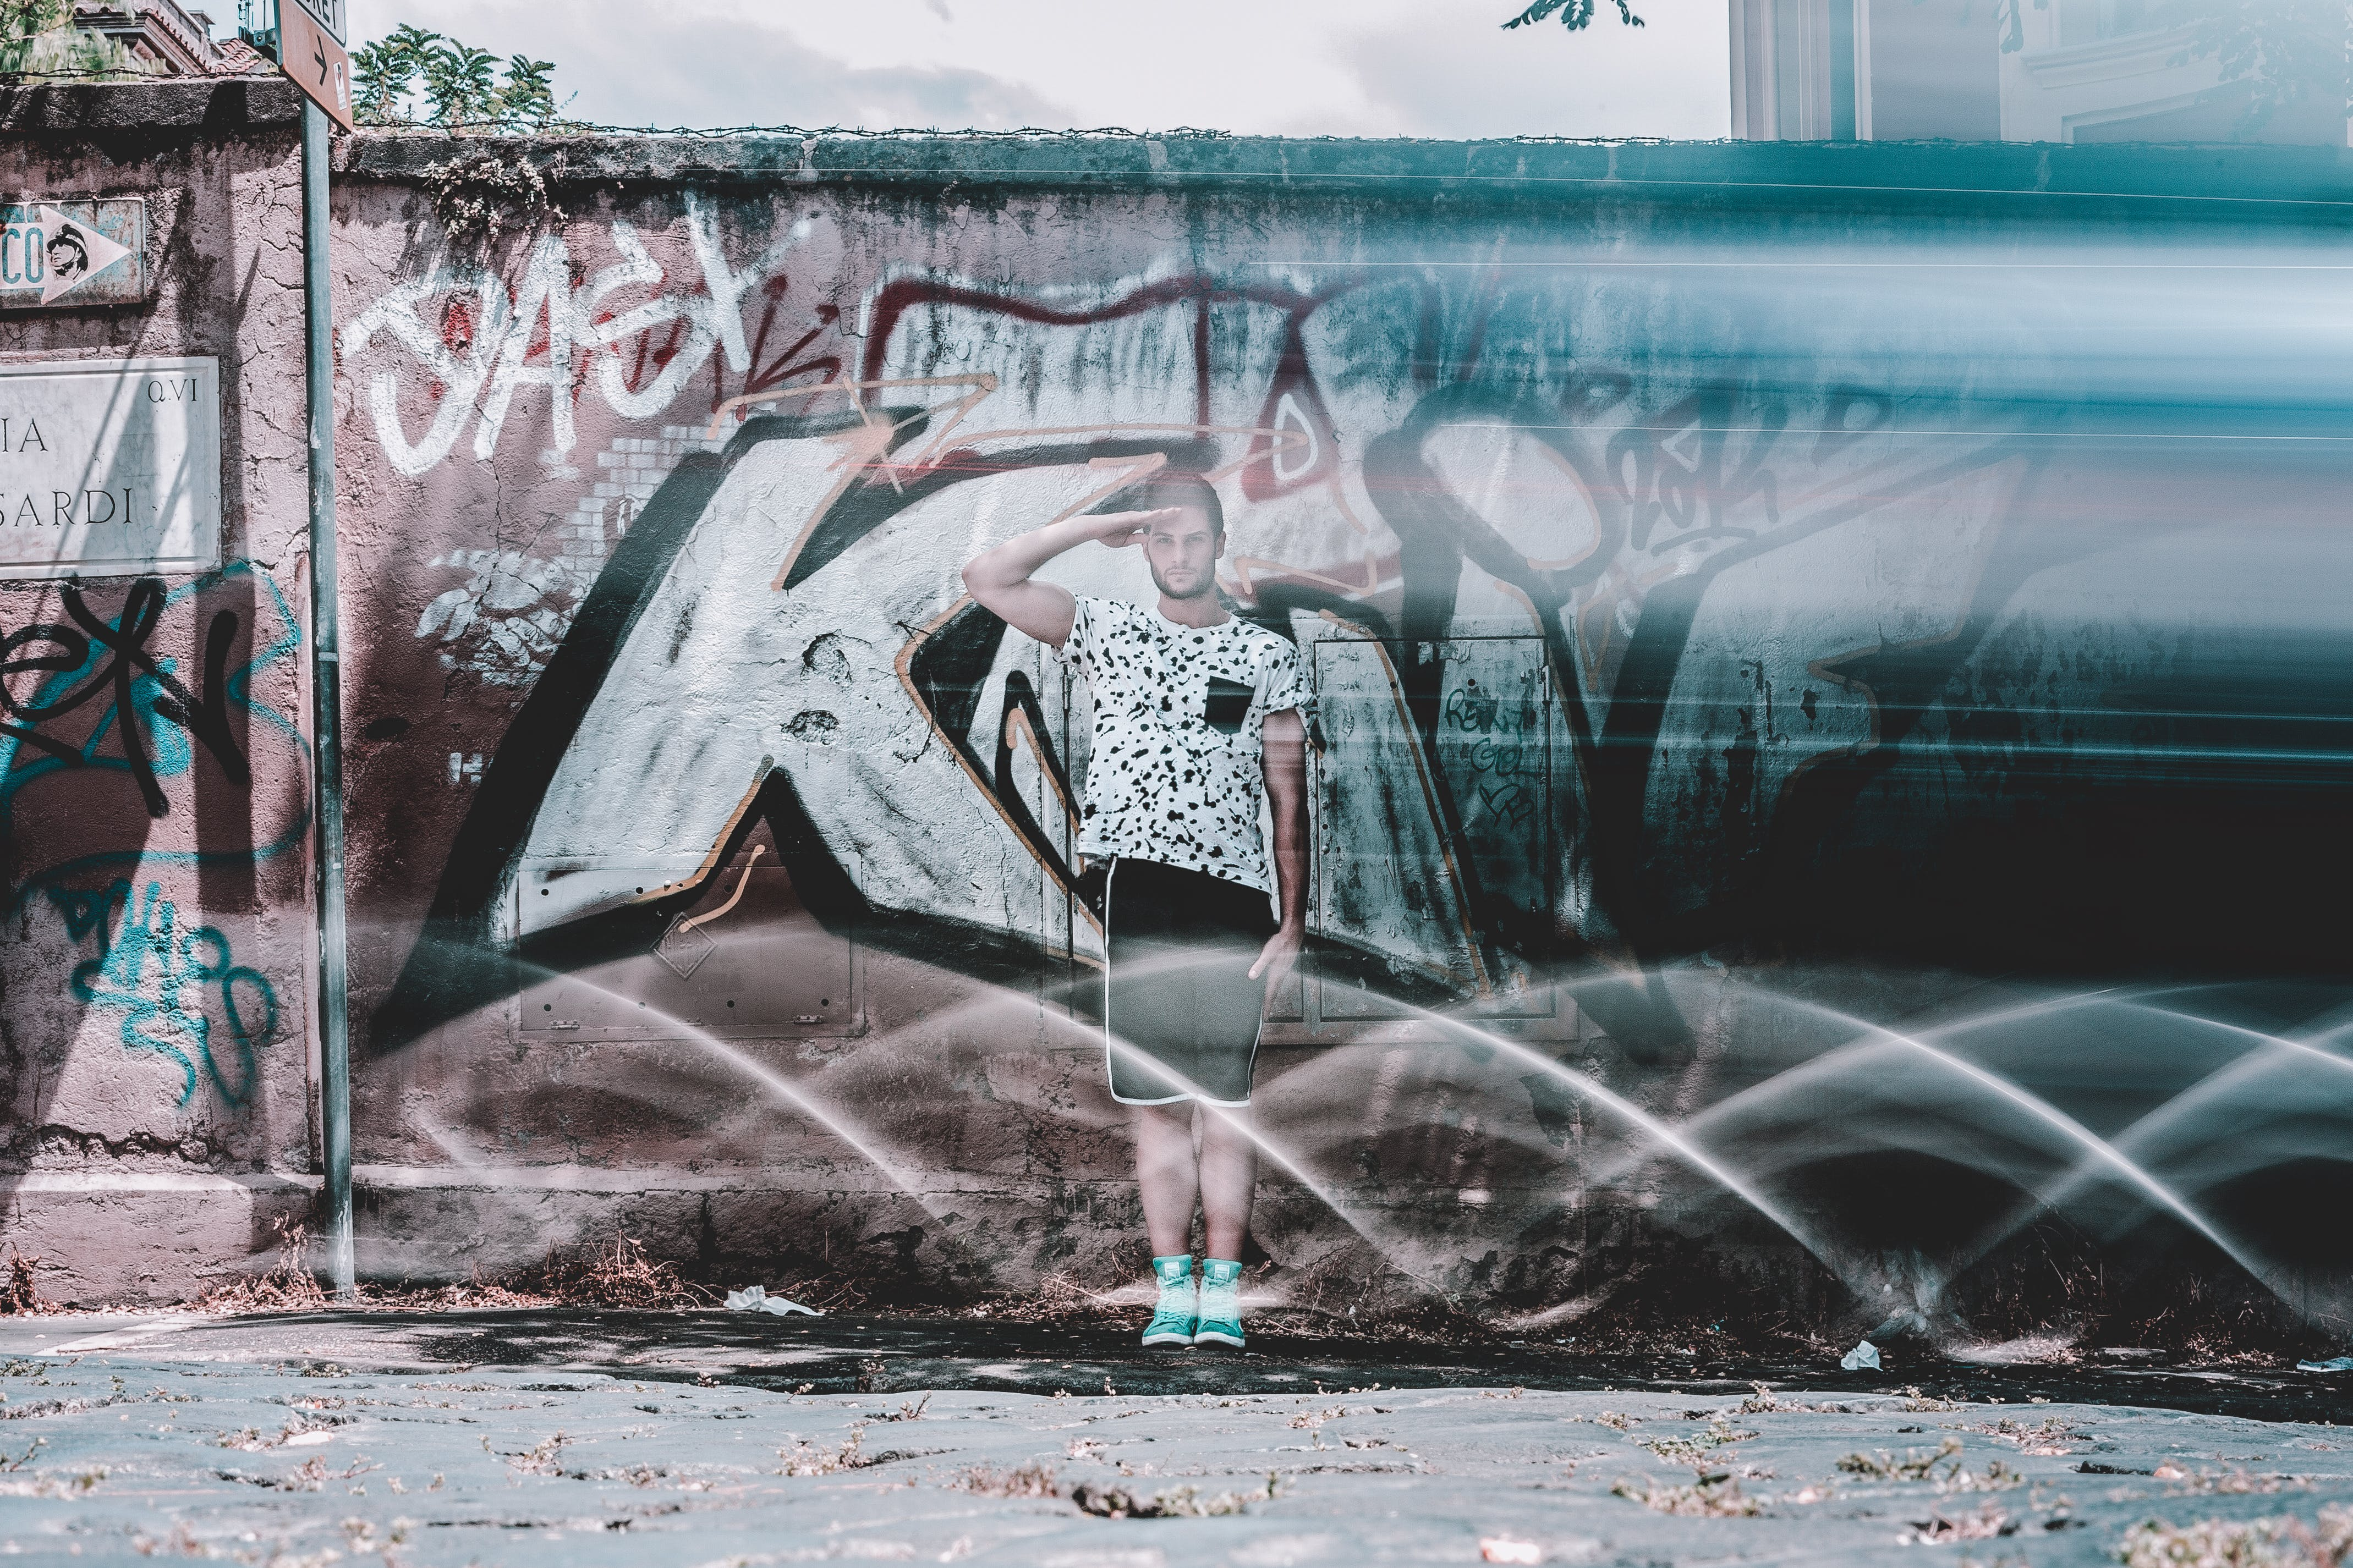 Man in White Shirt and Black Shorts Saluting Graffiti at Daytime